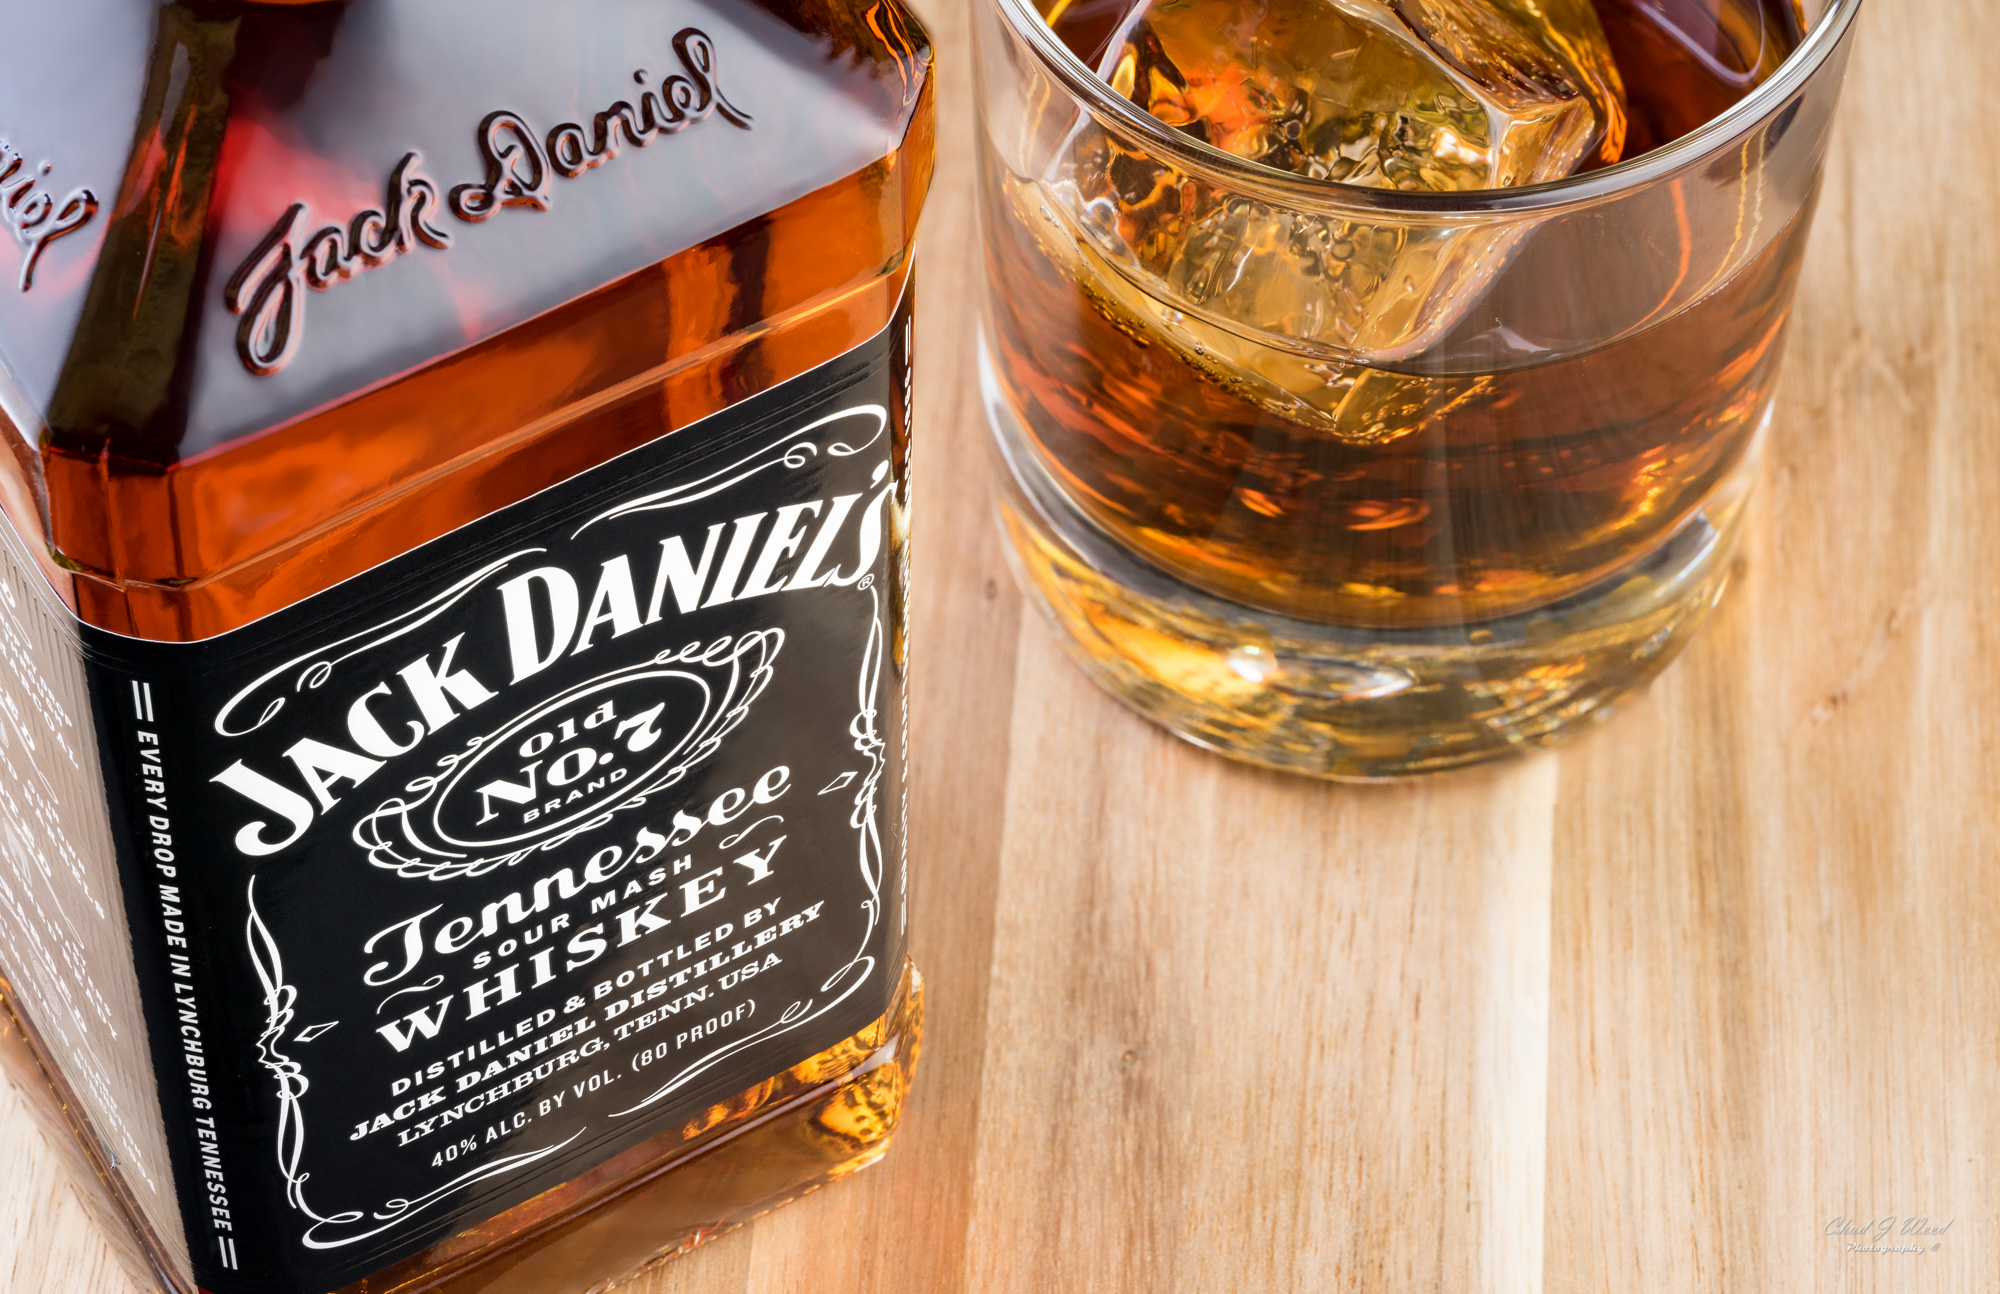 Jack Daniels Old No 7 Arizona Commercial Beverage Photographer